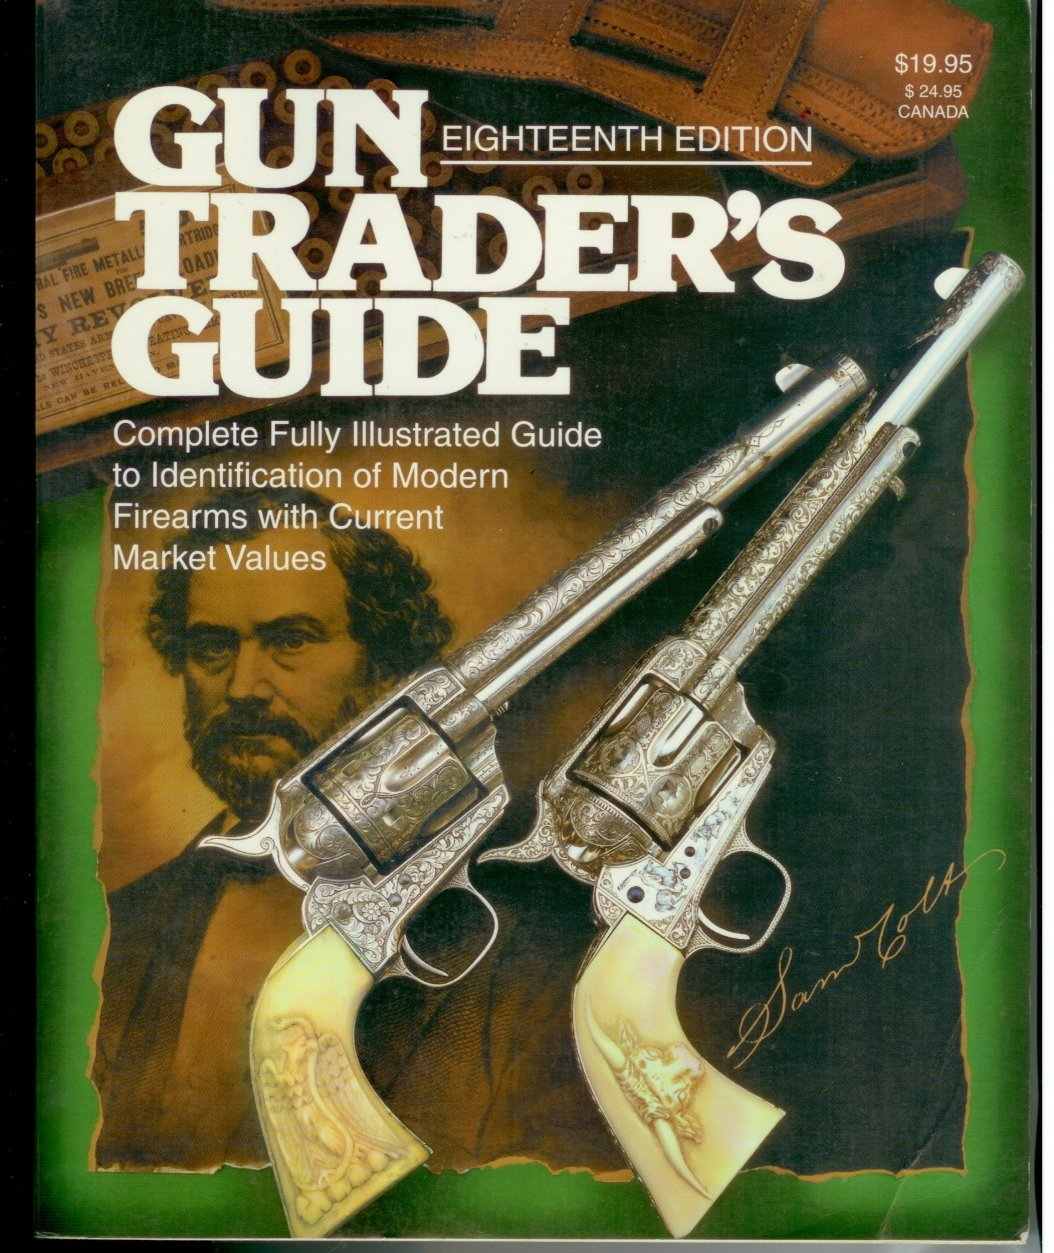 Gun Traders Guide Eighteenth edition  18th edition 1995